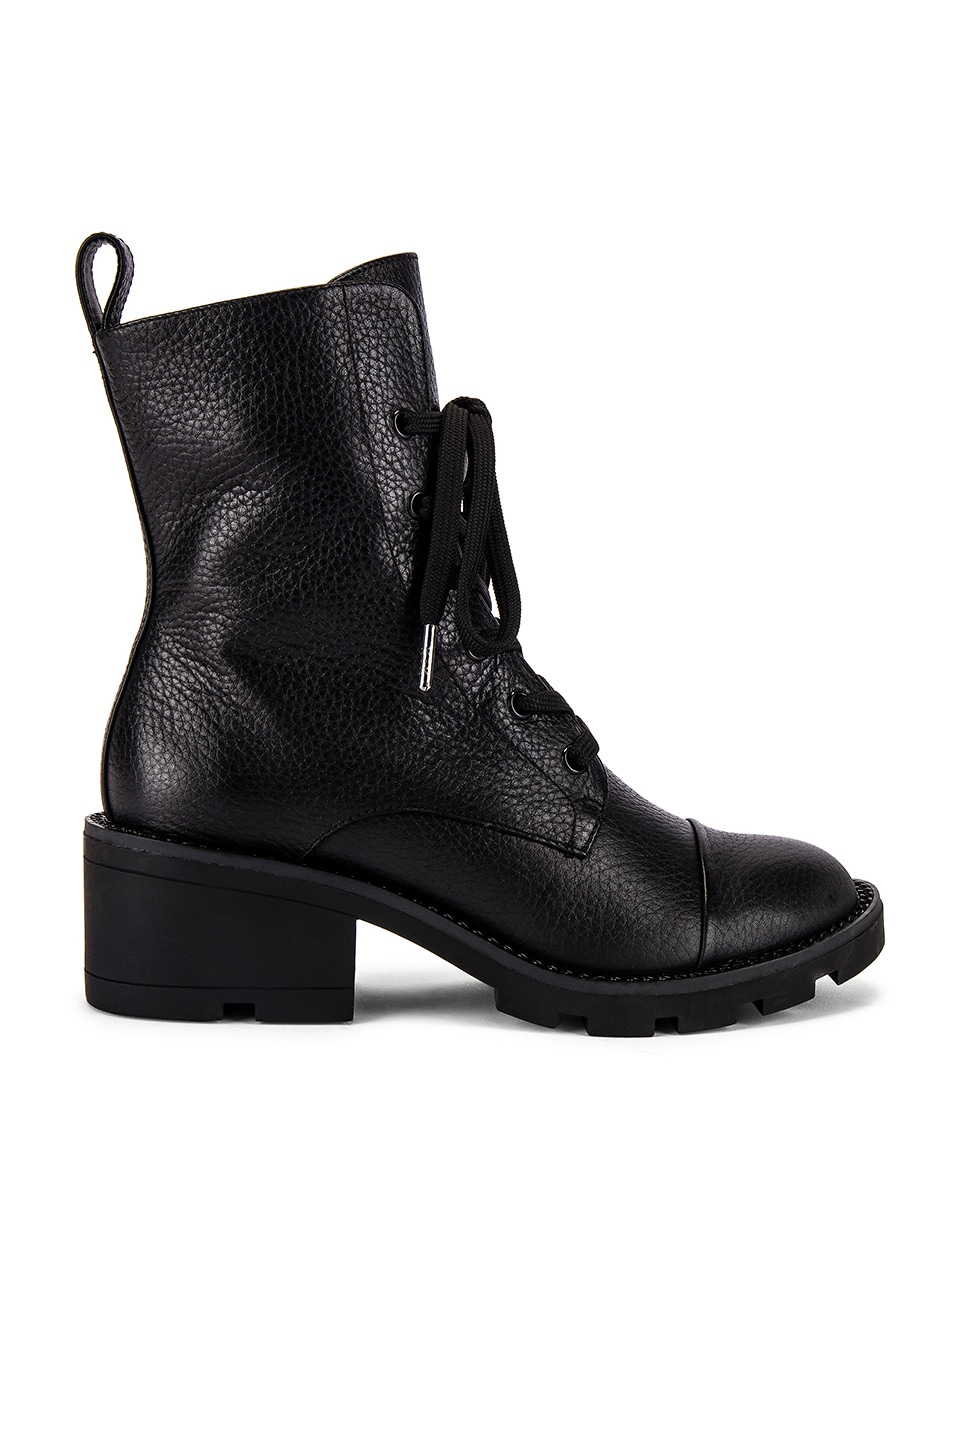 KENDALL + KYLIE Park Boot in Black